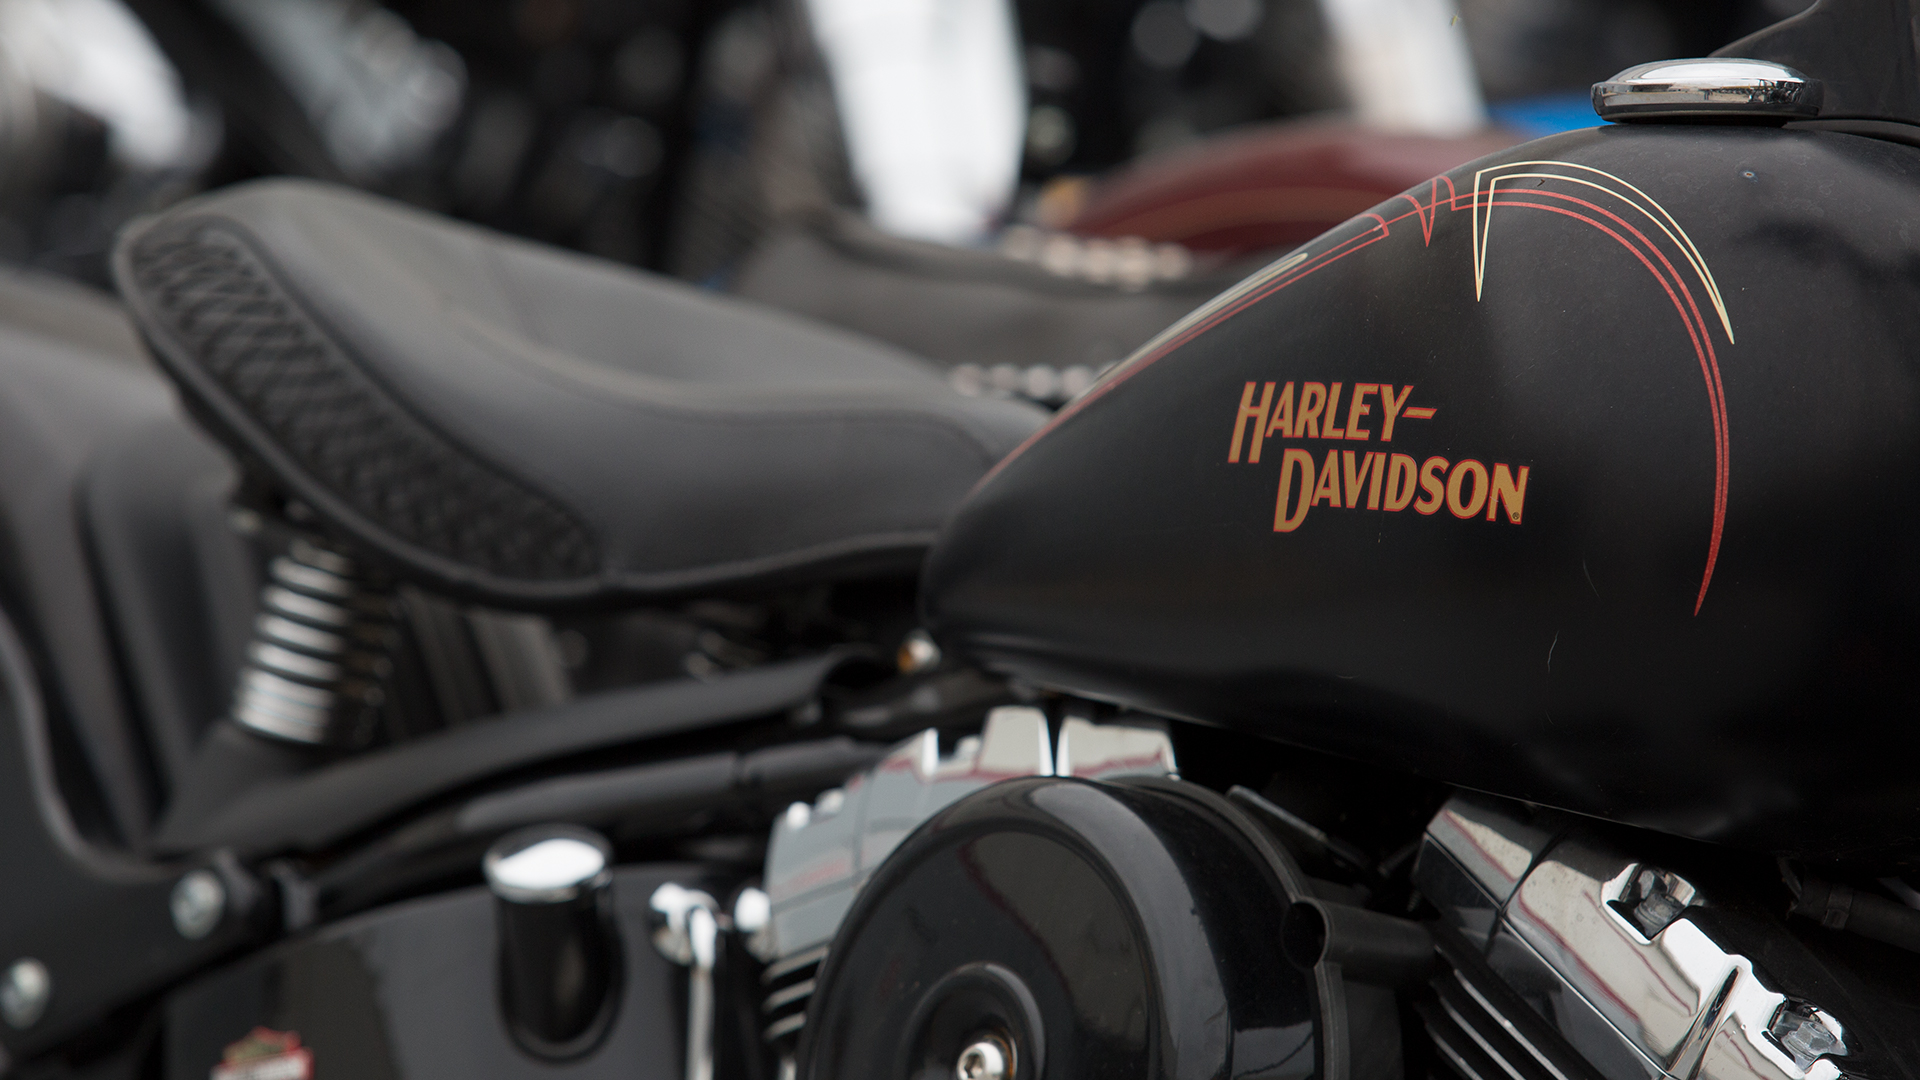 Black and orange Harley Davidson motorcycle